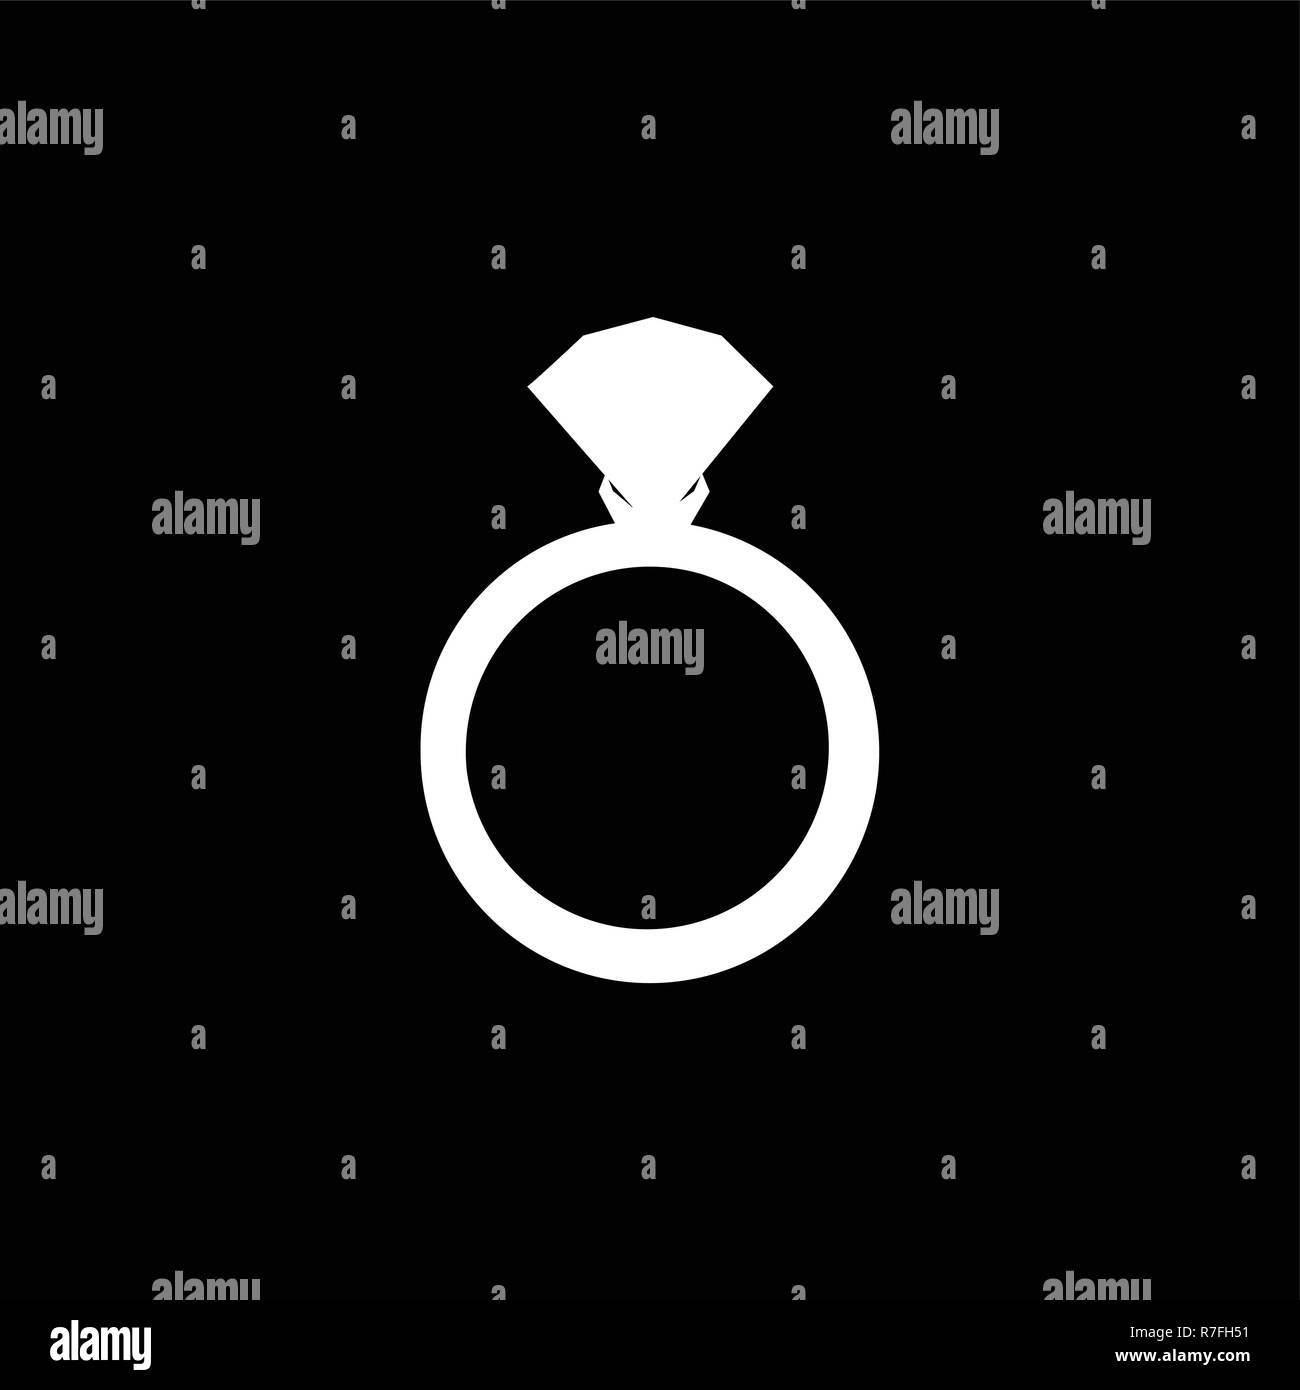 Vector white silhouette of engagement ring with diamond isolated on black background. Wedding or marriage present icon, sign, symbol, clip art isolate - Stock Image